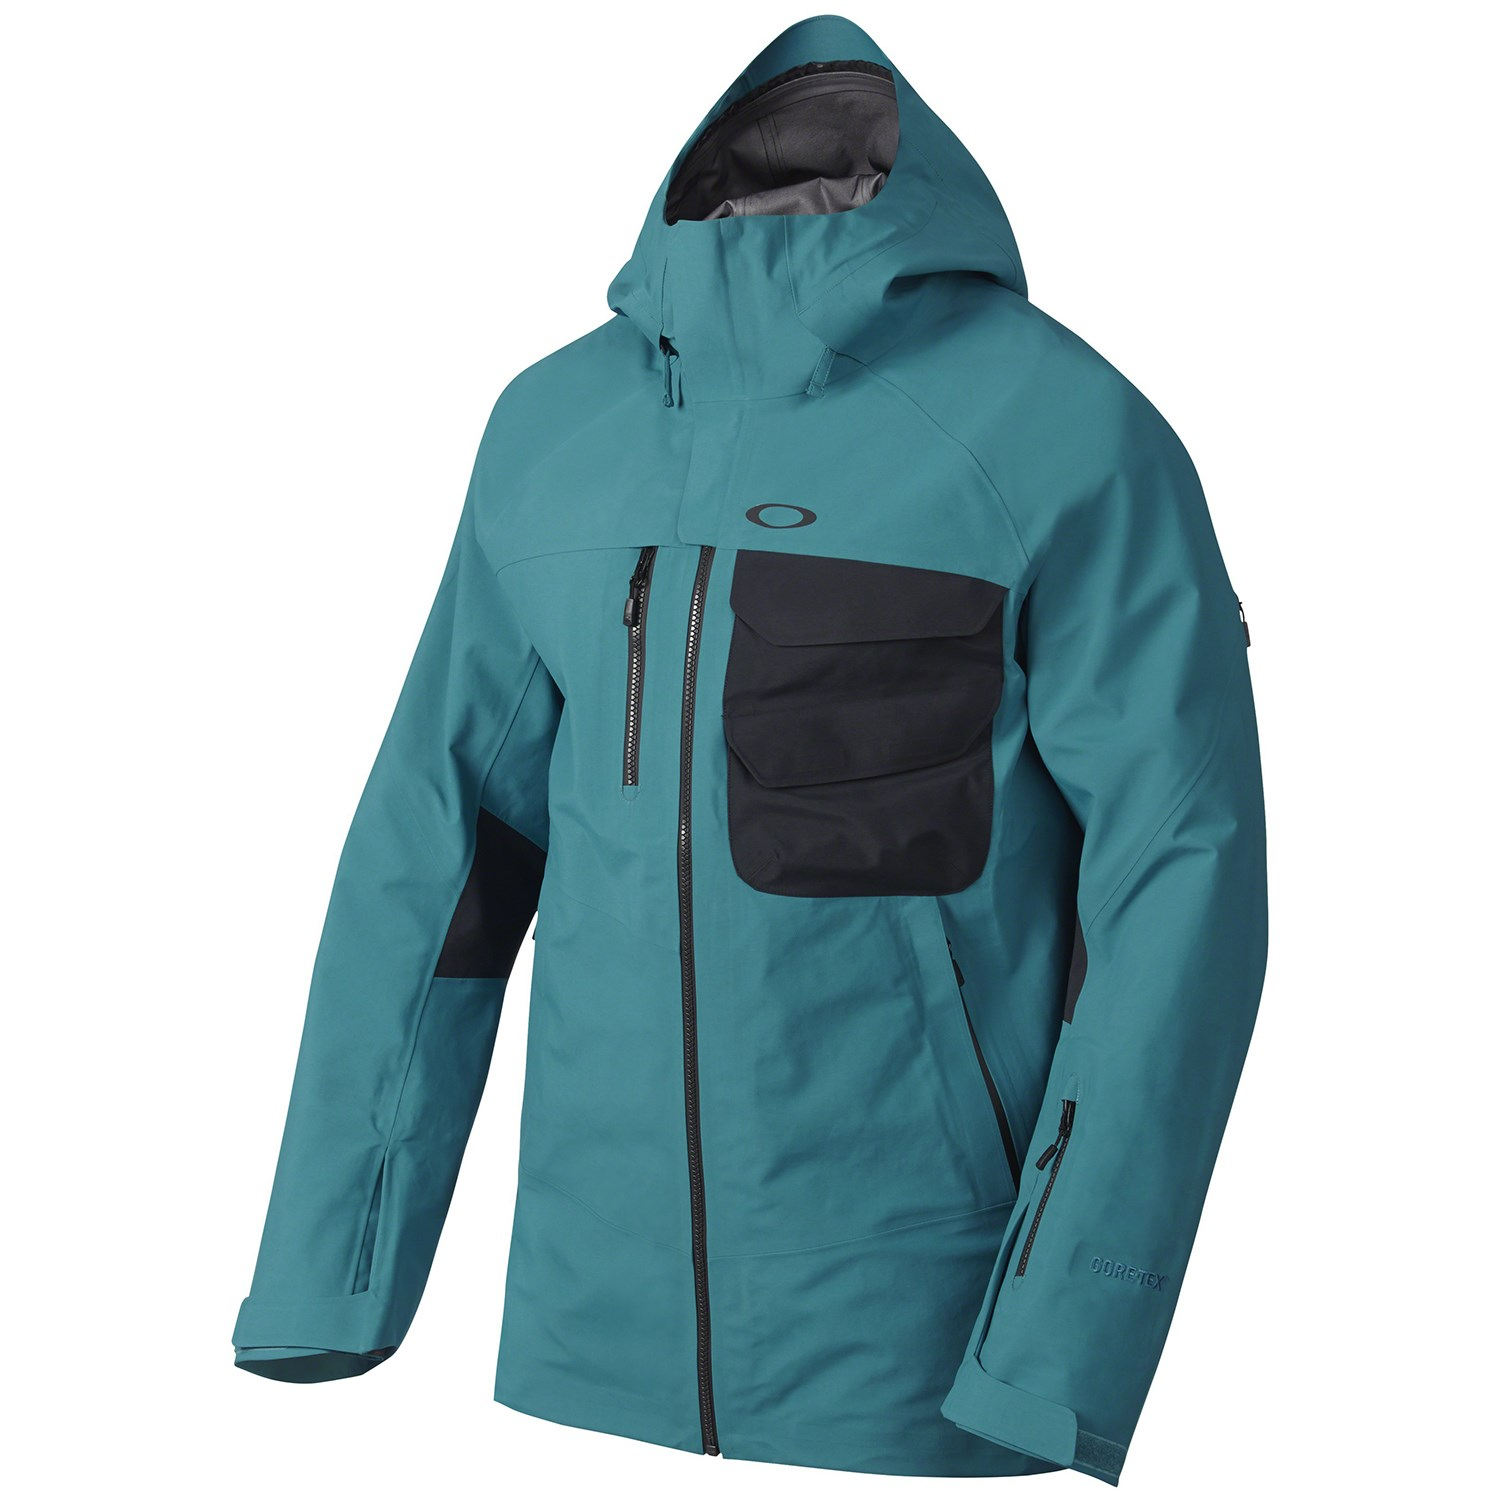 oakley jacket  Oakley Solitude GORE-TEX庐 3L Jacket